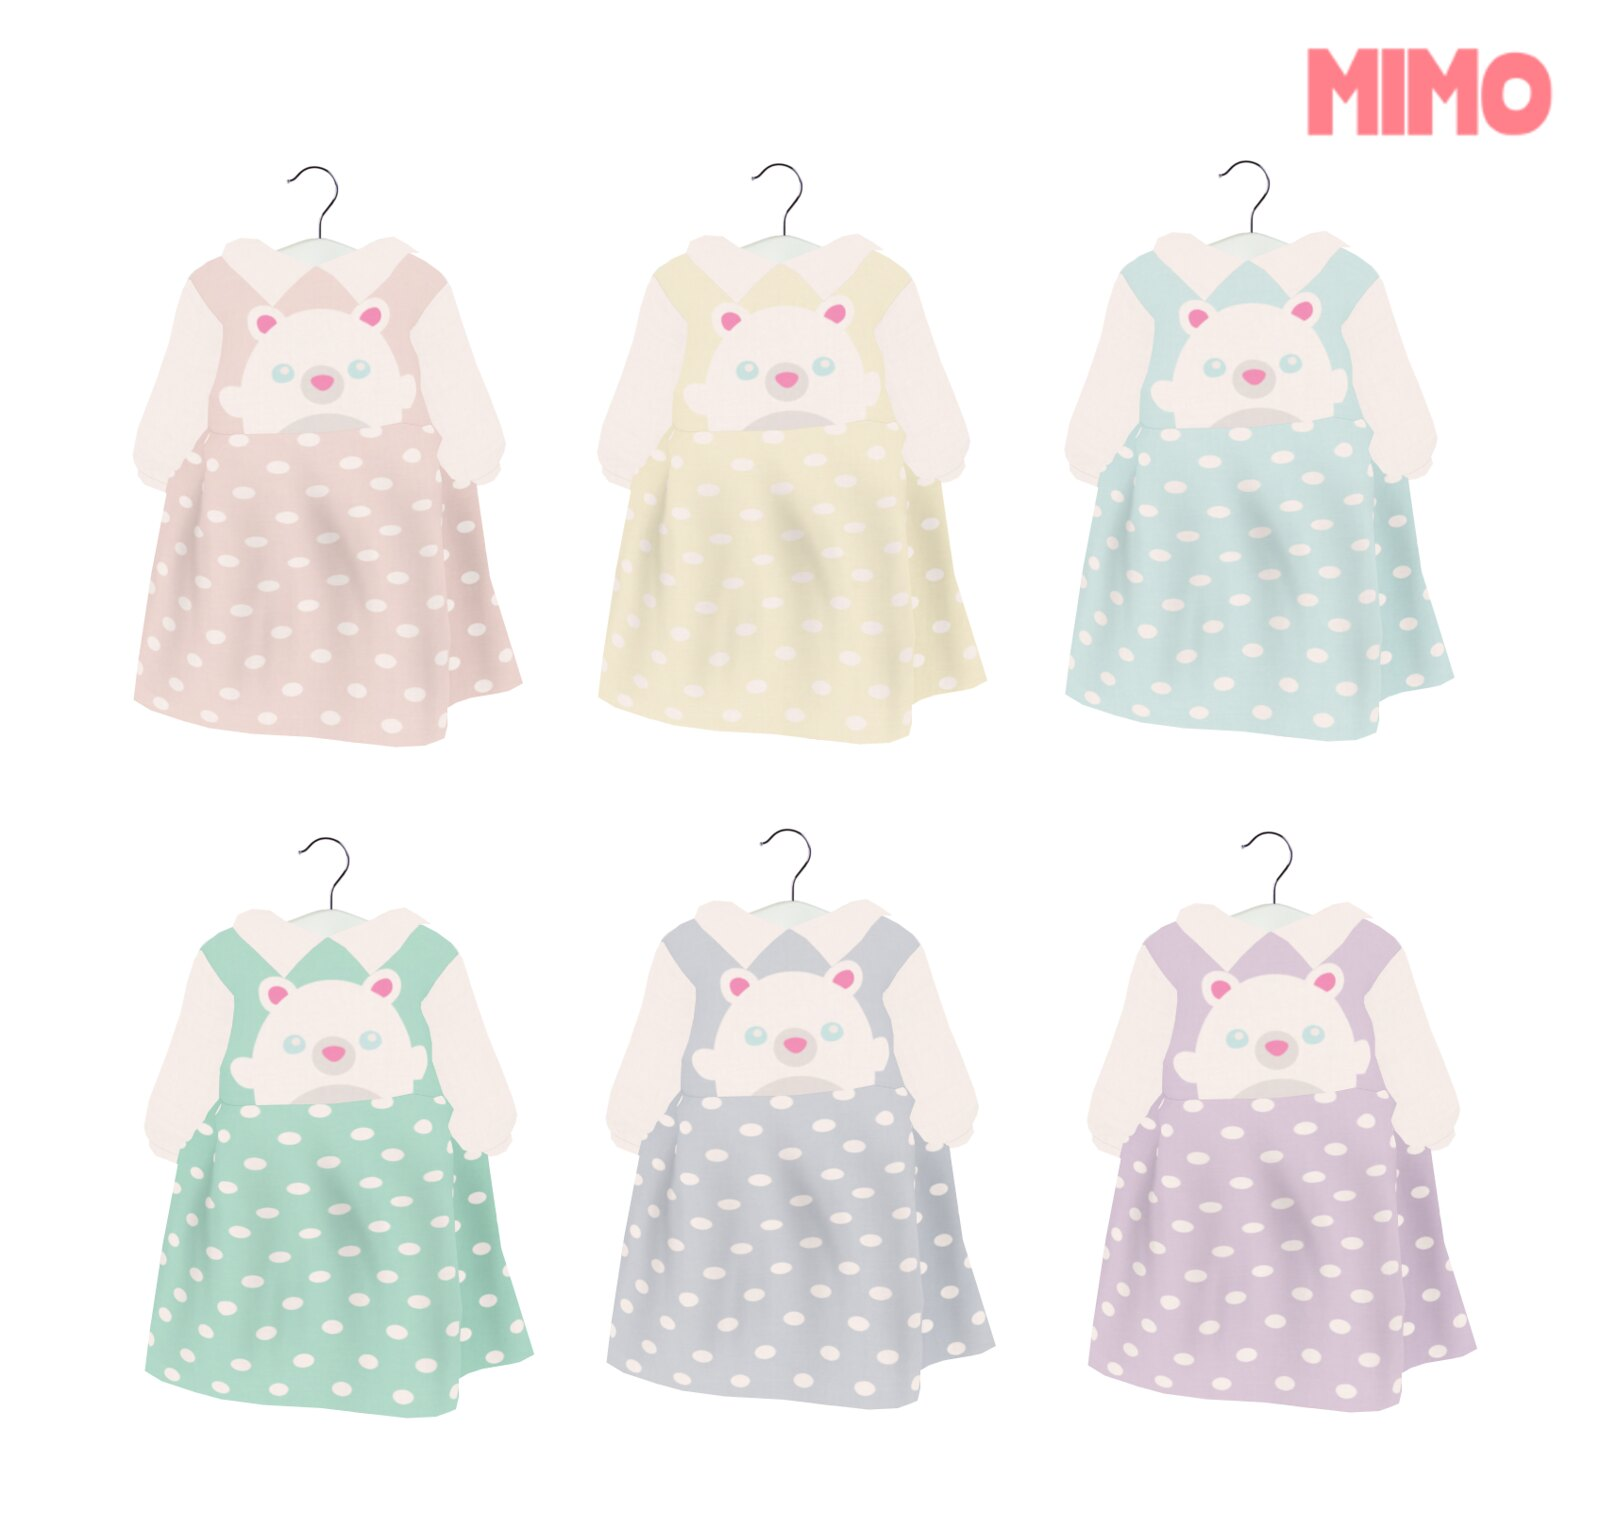 {Mimo} Cute Bear Dress ToddleeDoo